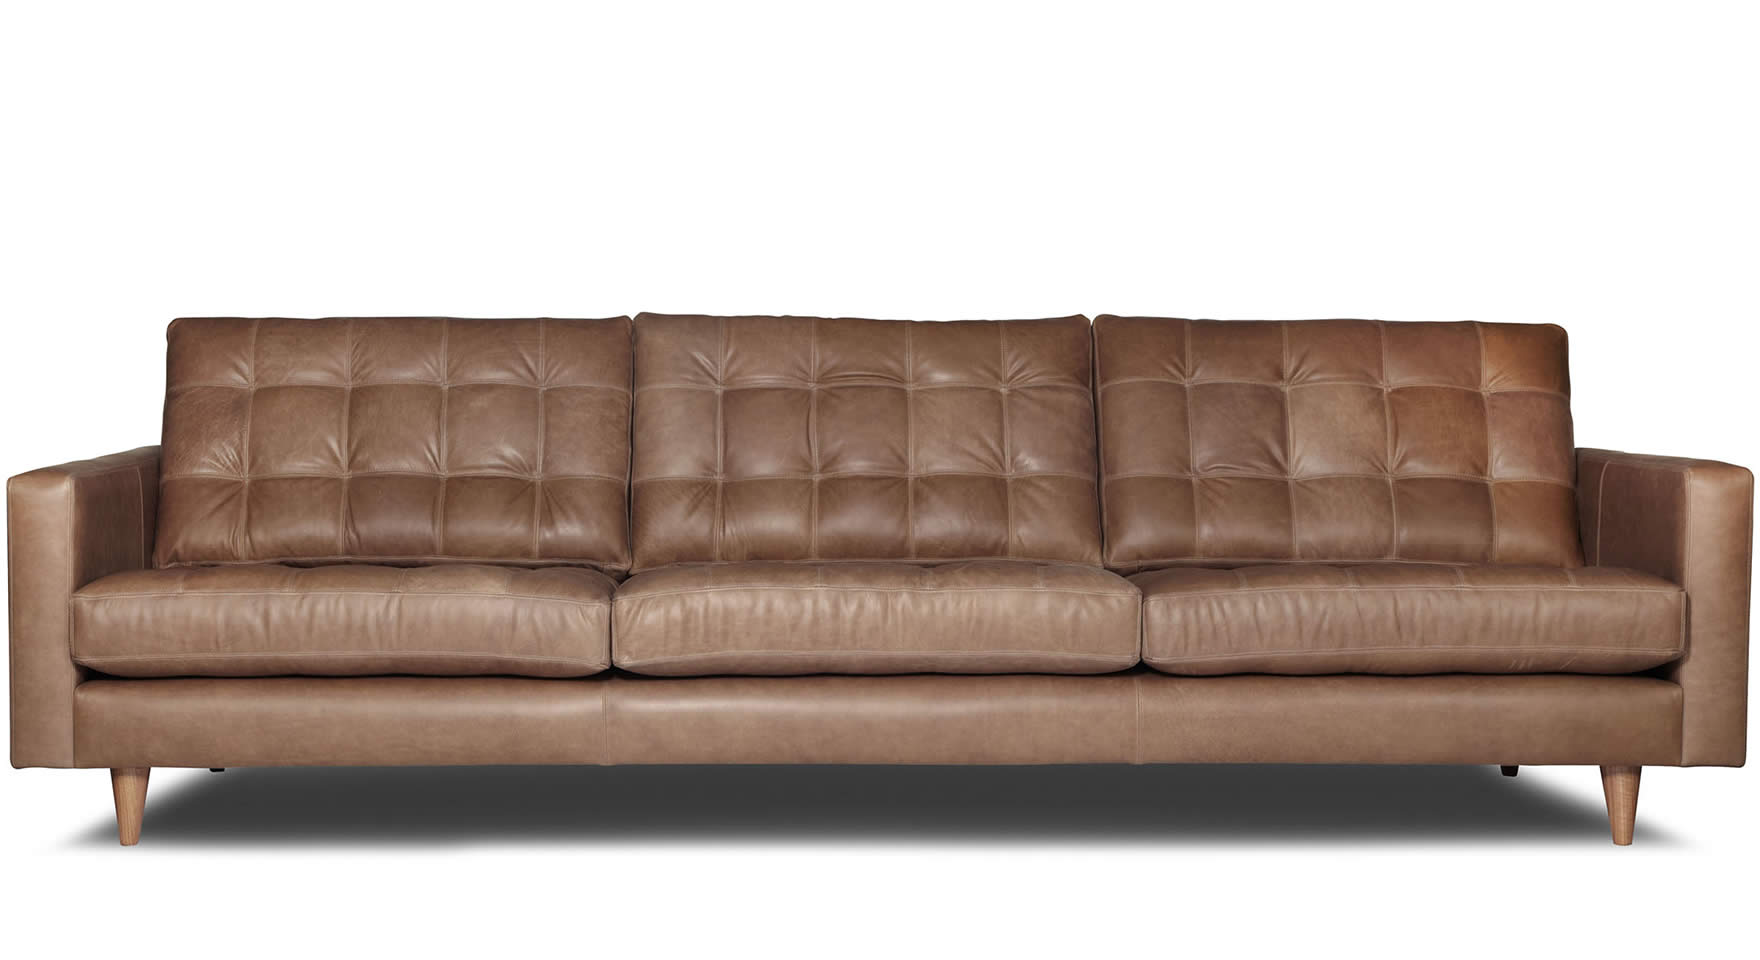 Manhatten Sofa